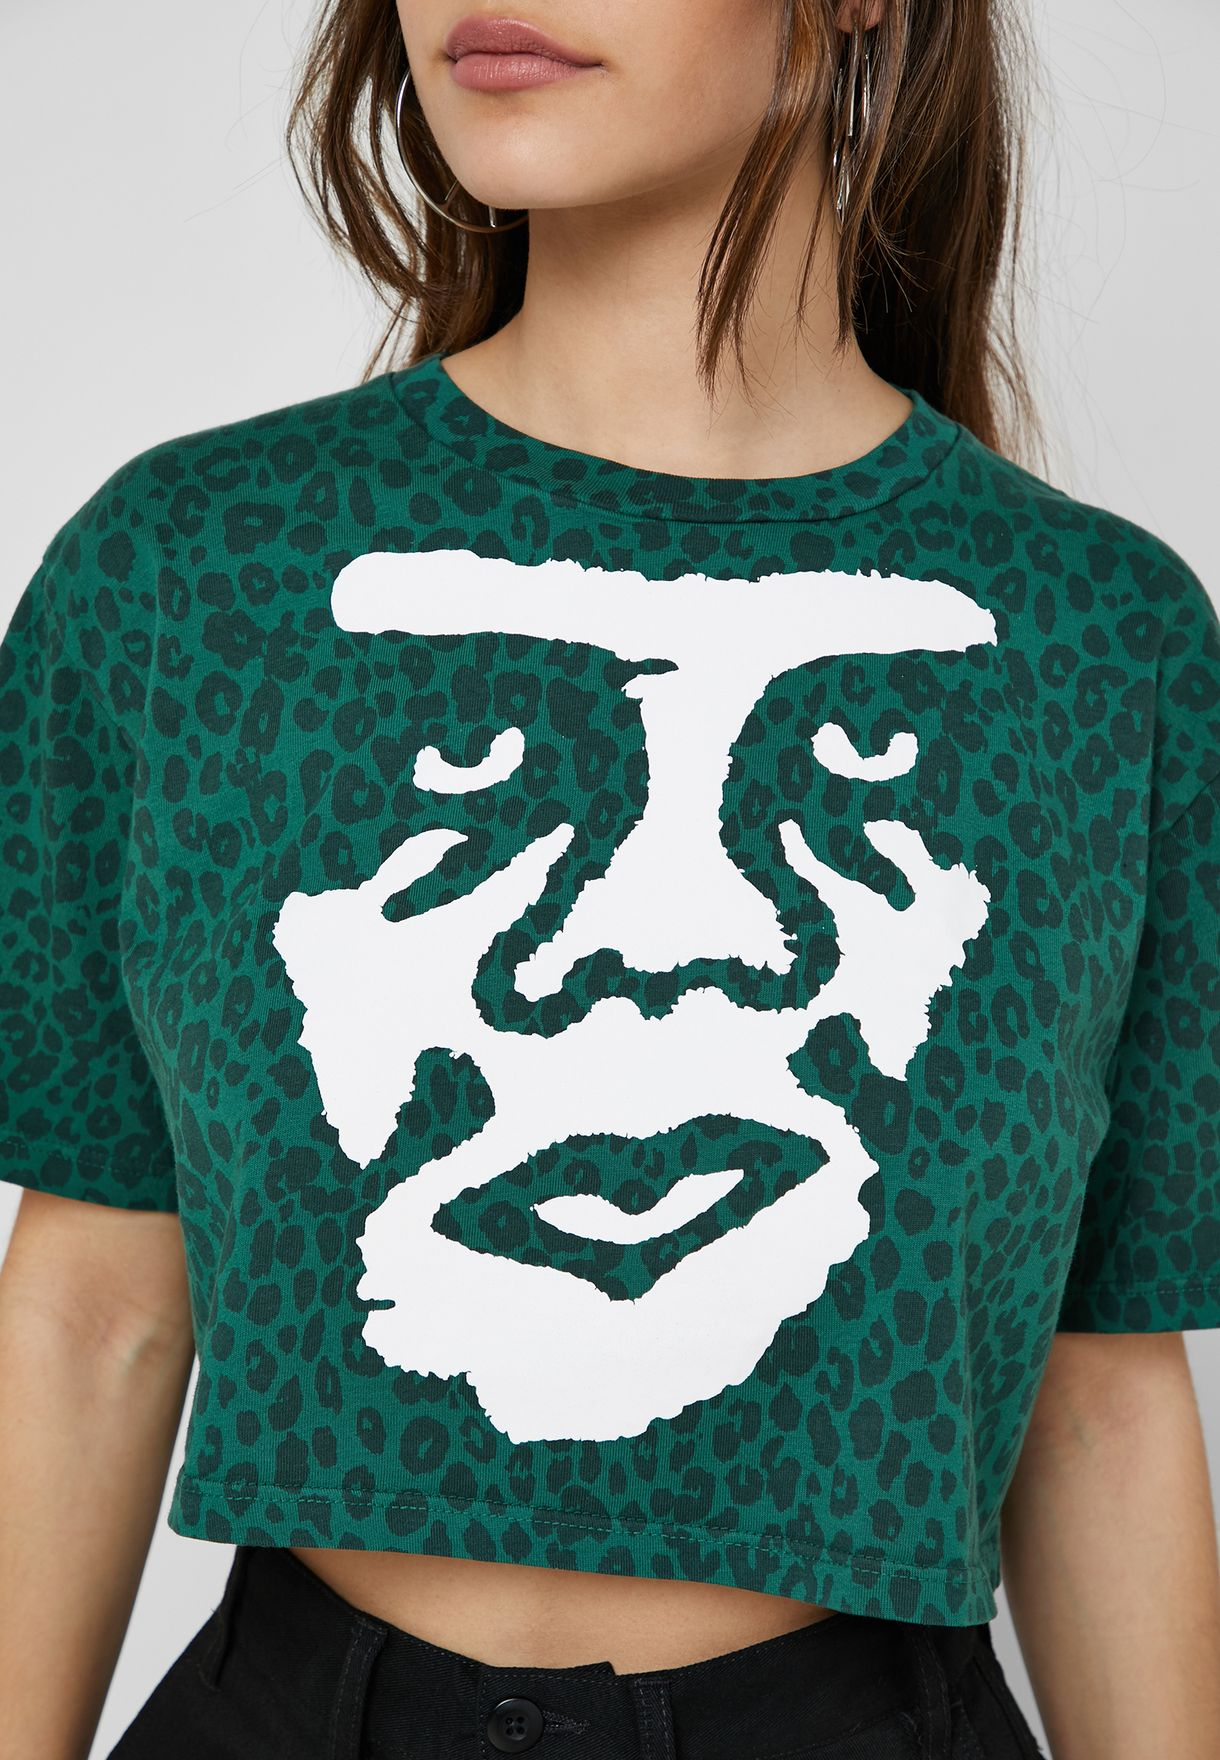 The Creeper T-Shirt